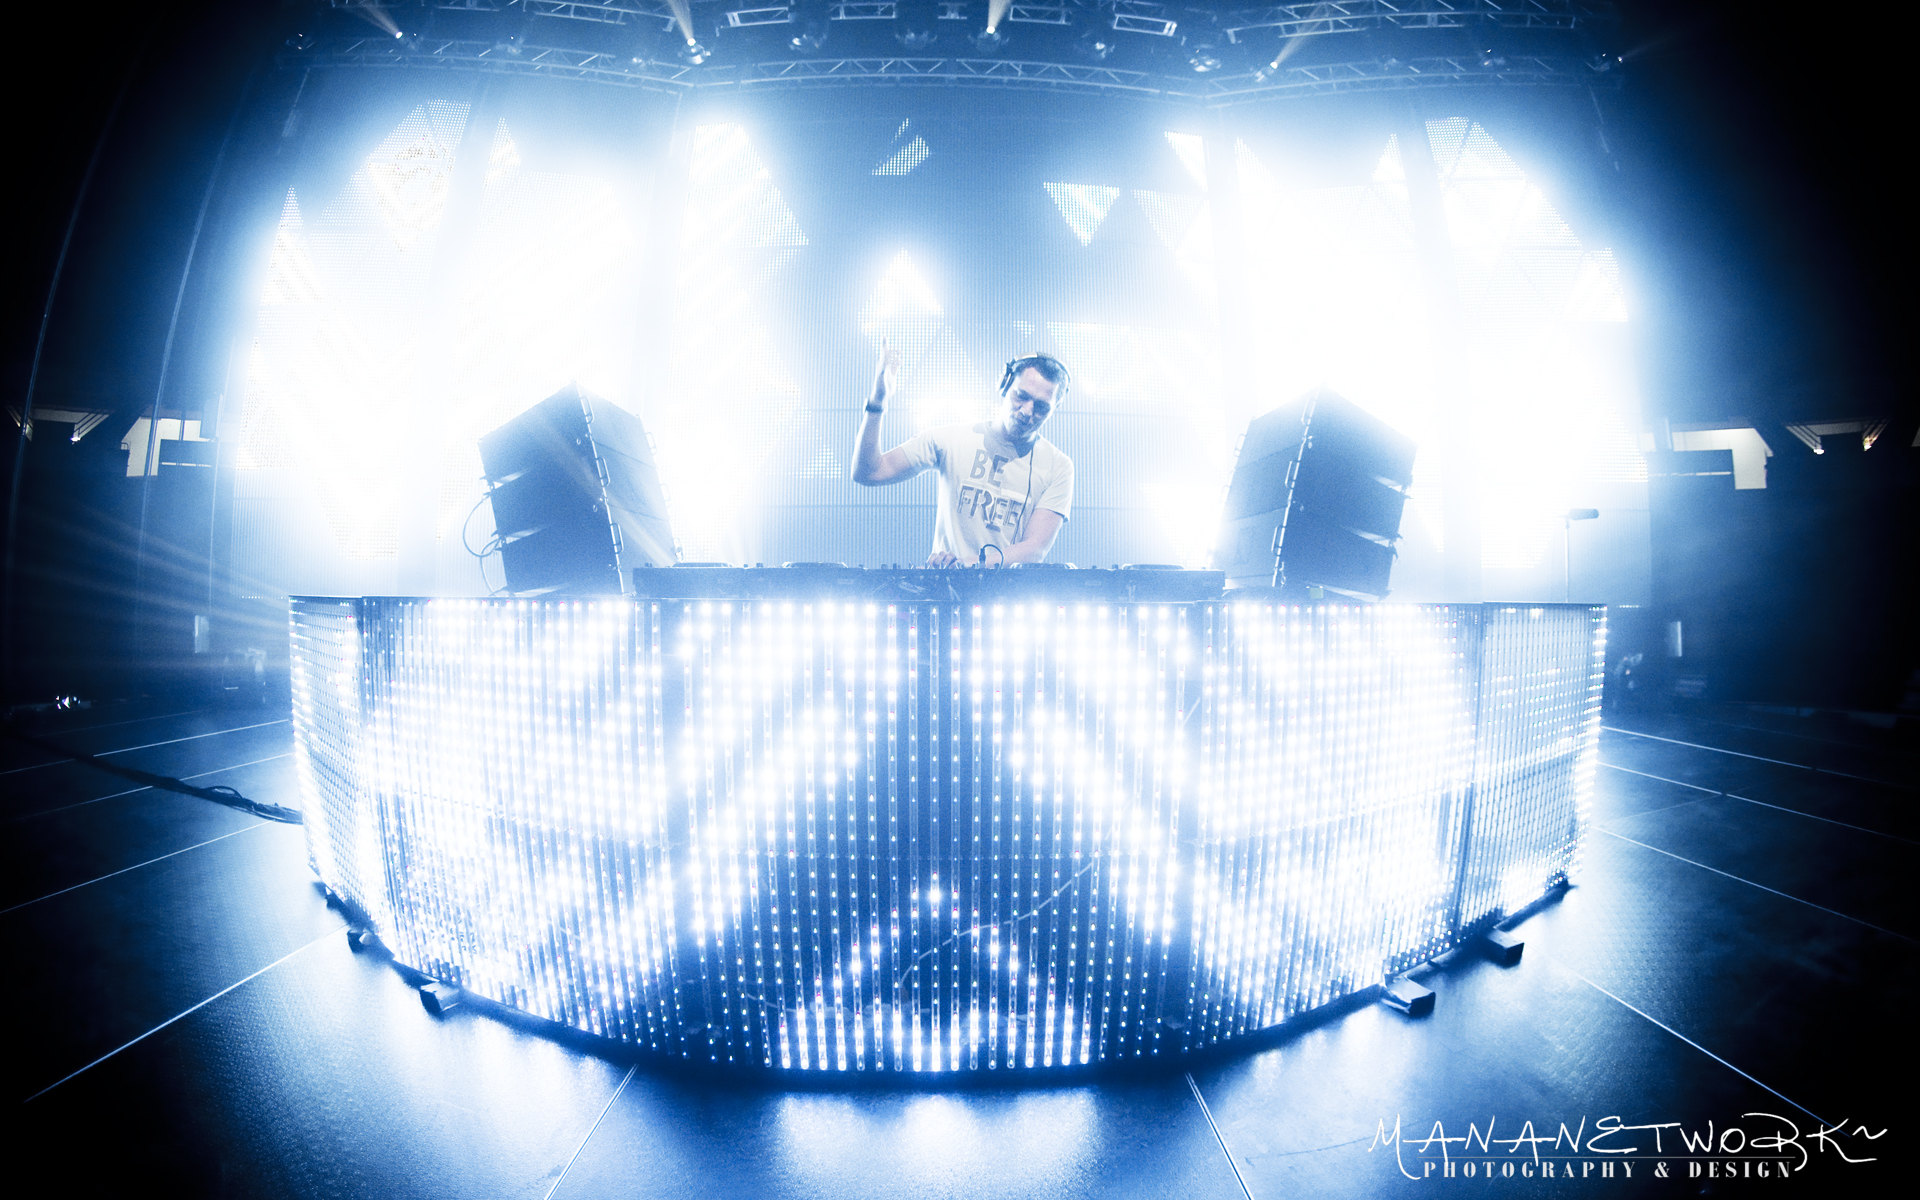 Tiesto Wallpaper HD Desktop Wallpapers 1920x1200